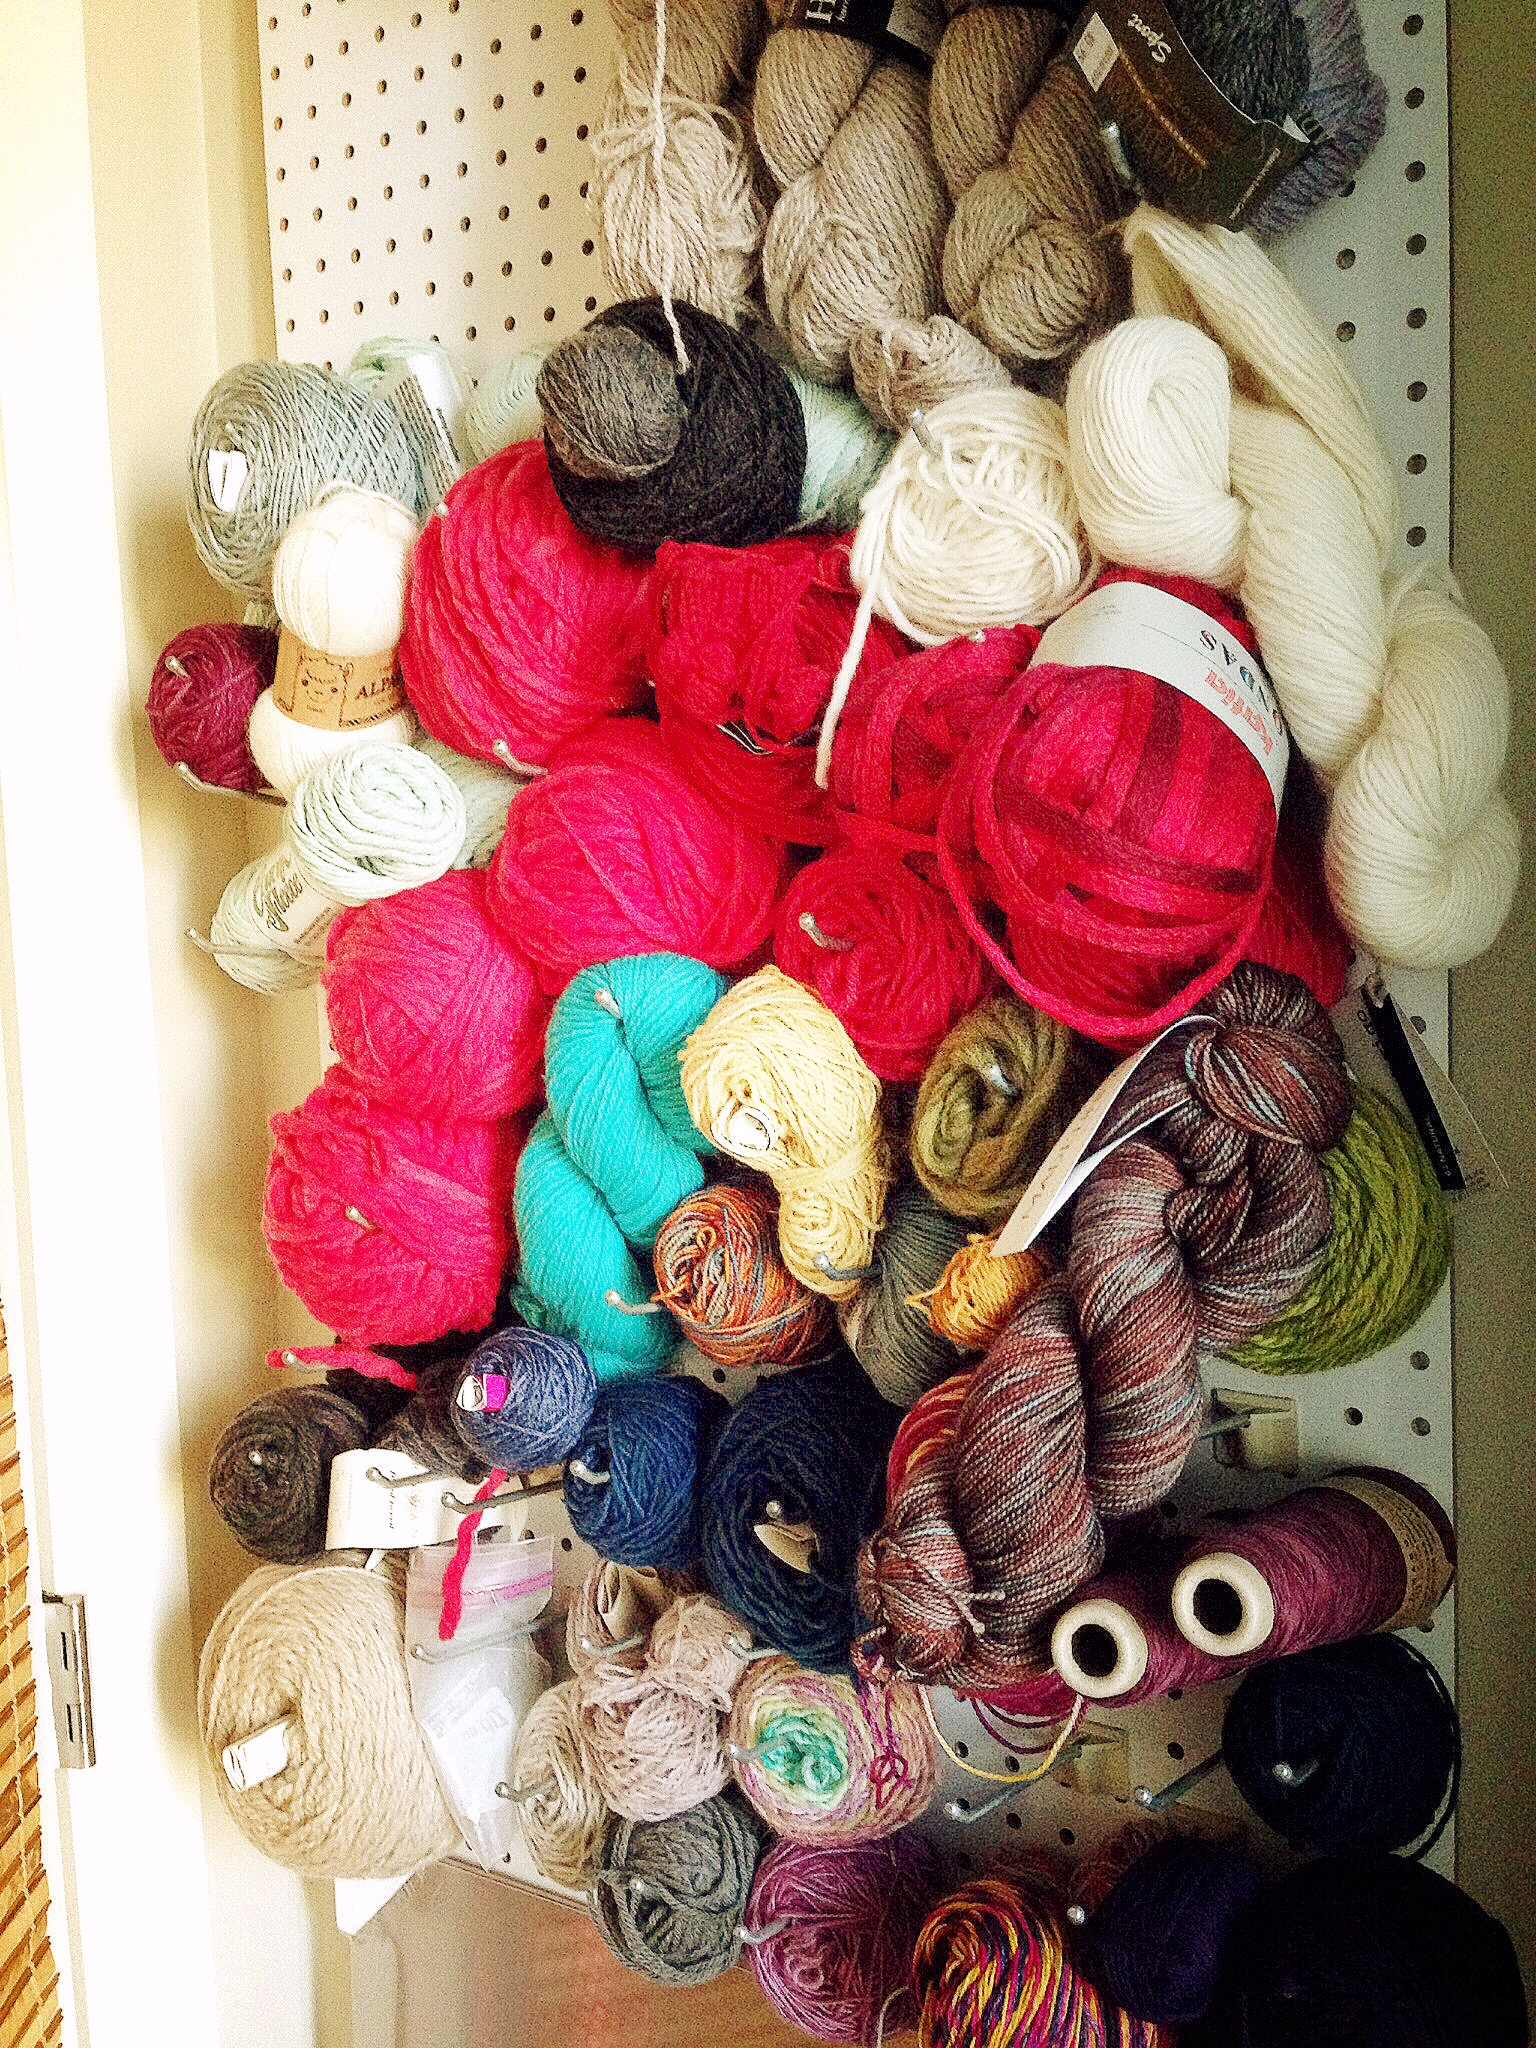 Yarn Wall! The #flufflyblondemonster created this removable peg board for me to store all of my yarn. It hides behind the door and also covers the fuse box for our apartment (which is why it had to be removable) It's a great way for me to visualize my yarn stash and plan projects.